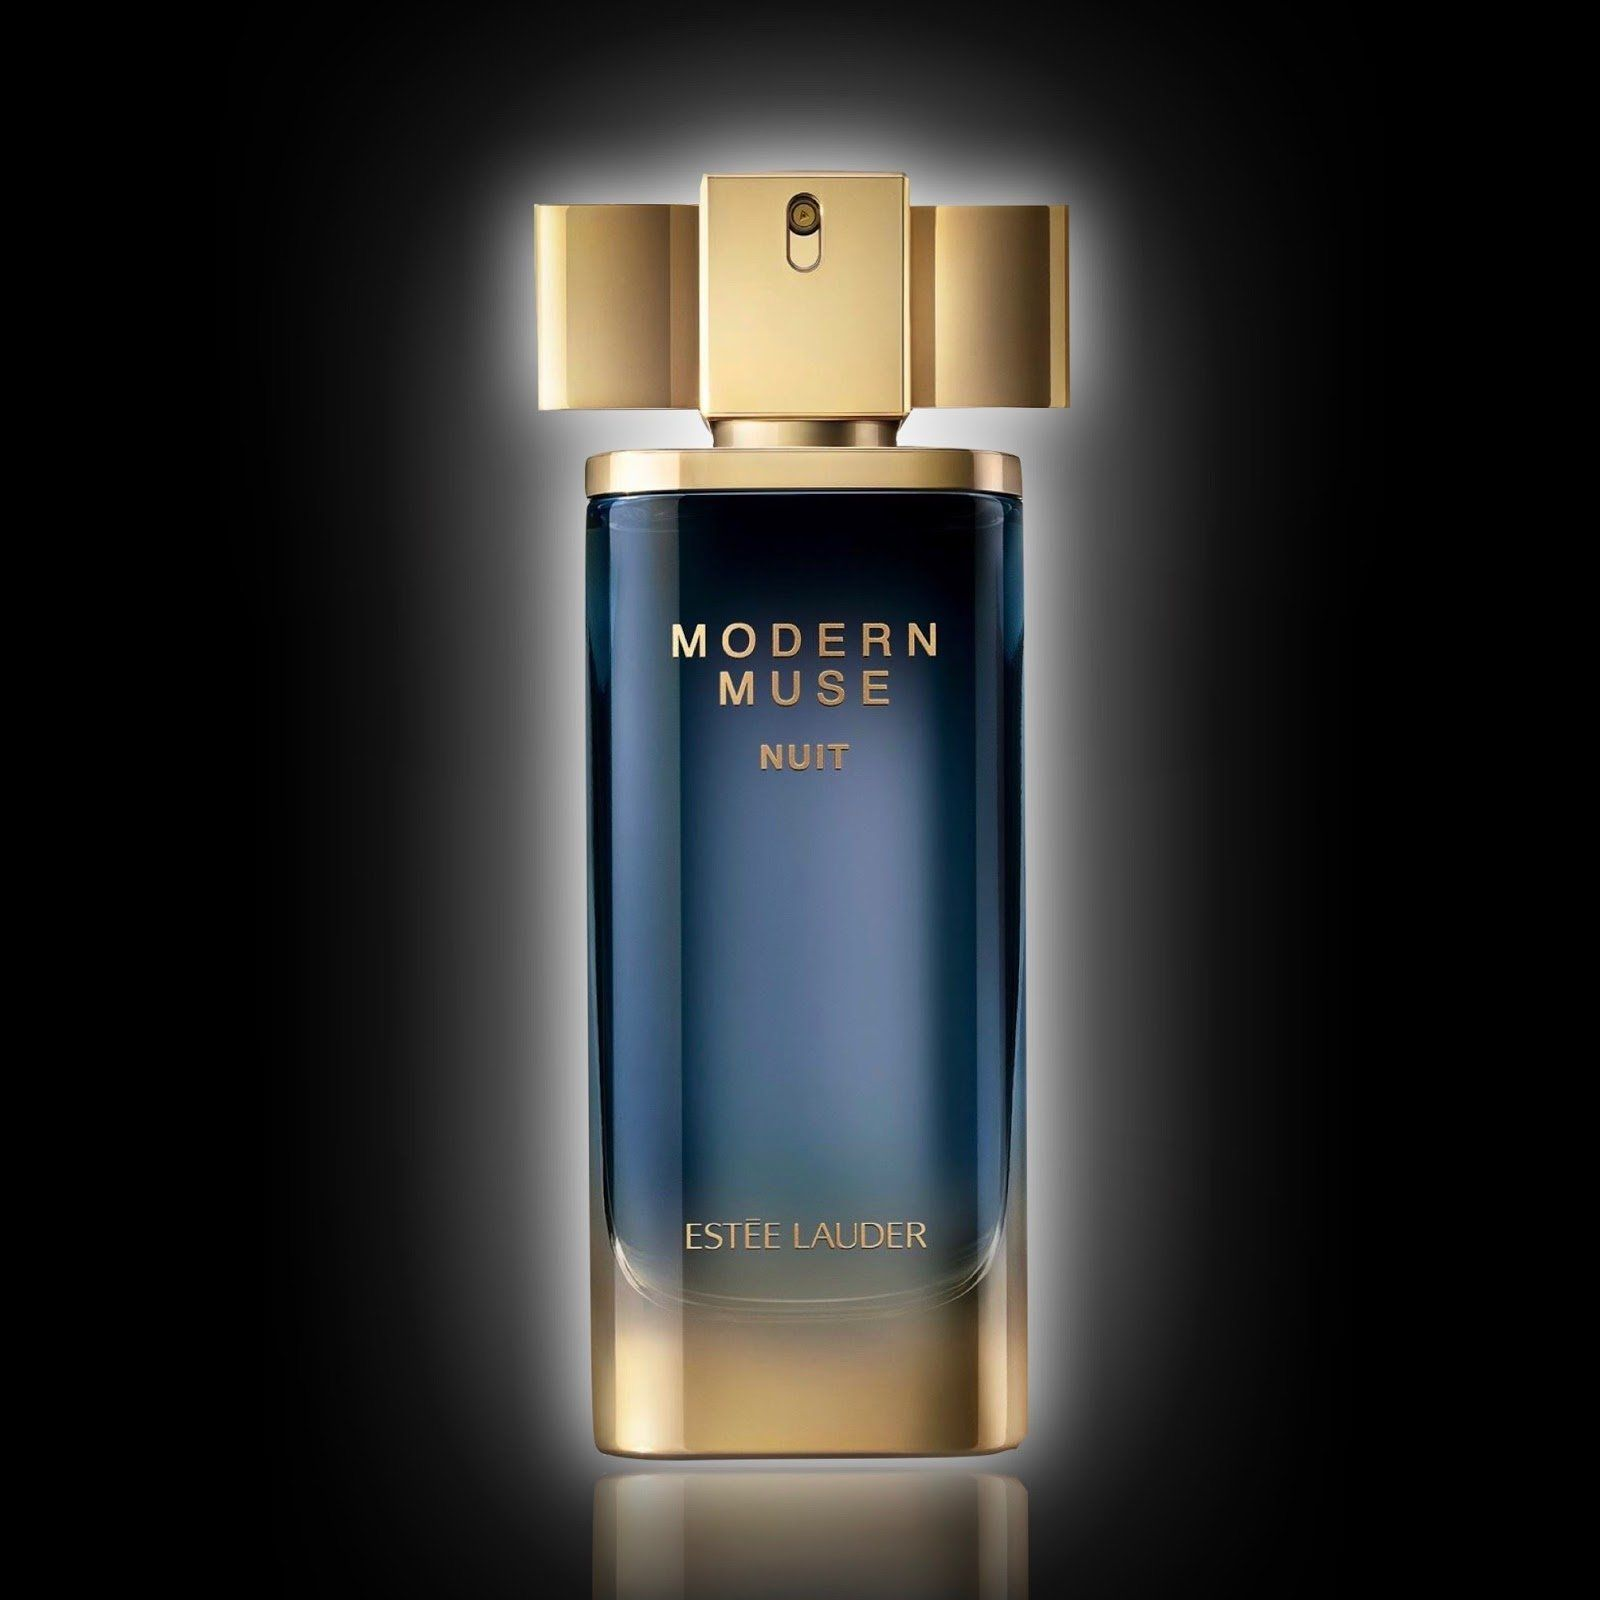 Awesome Product Modern Muse Nuit Take A Look Here Http Www Pedrosuperstore Com Products Modern Muse Nuit Perfume By Estee Lau Perfume Modern Muse Estee